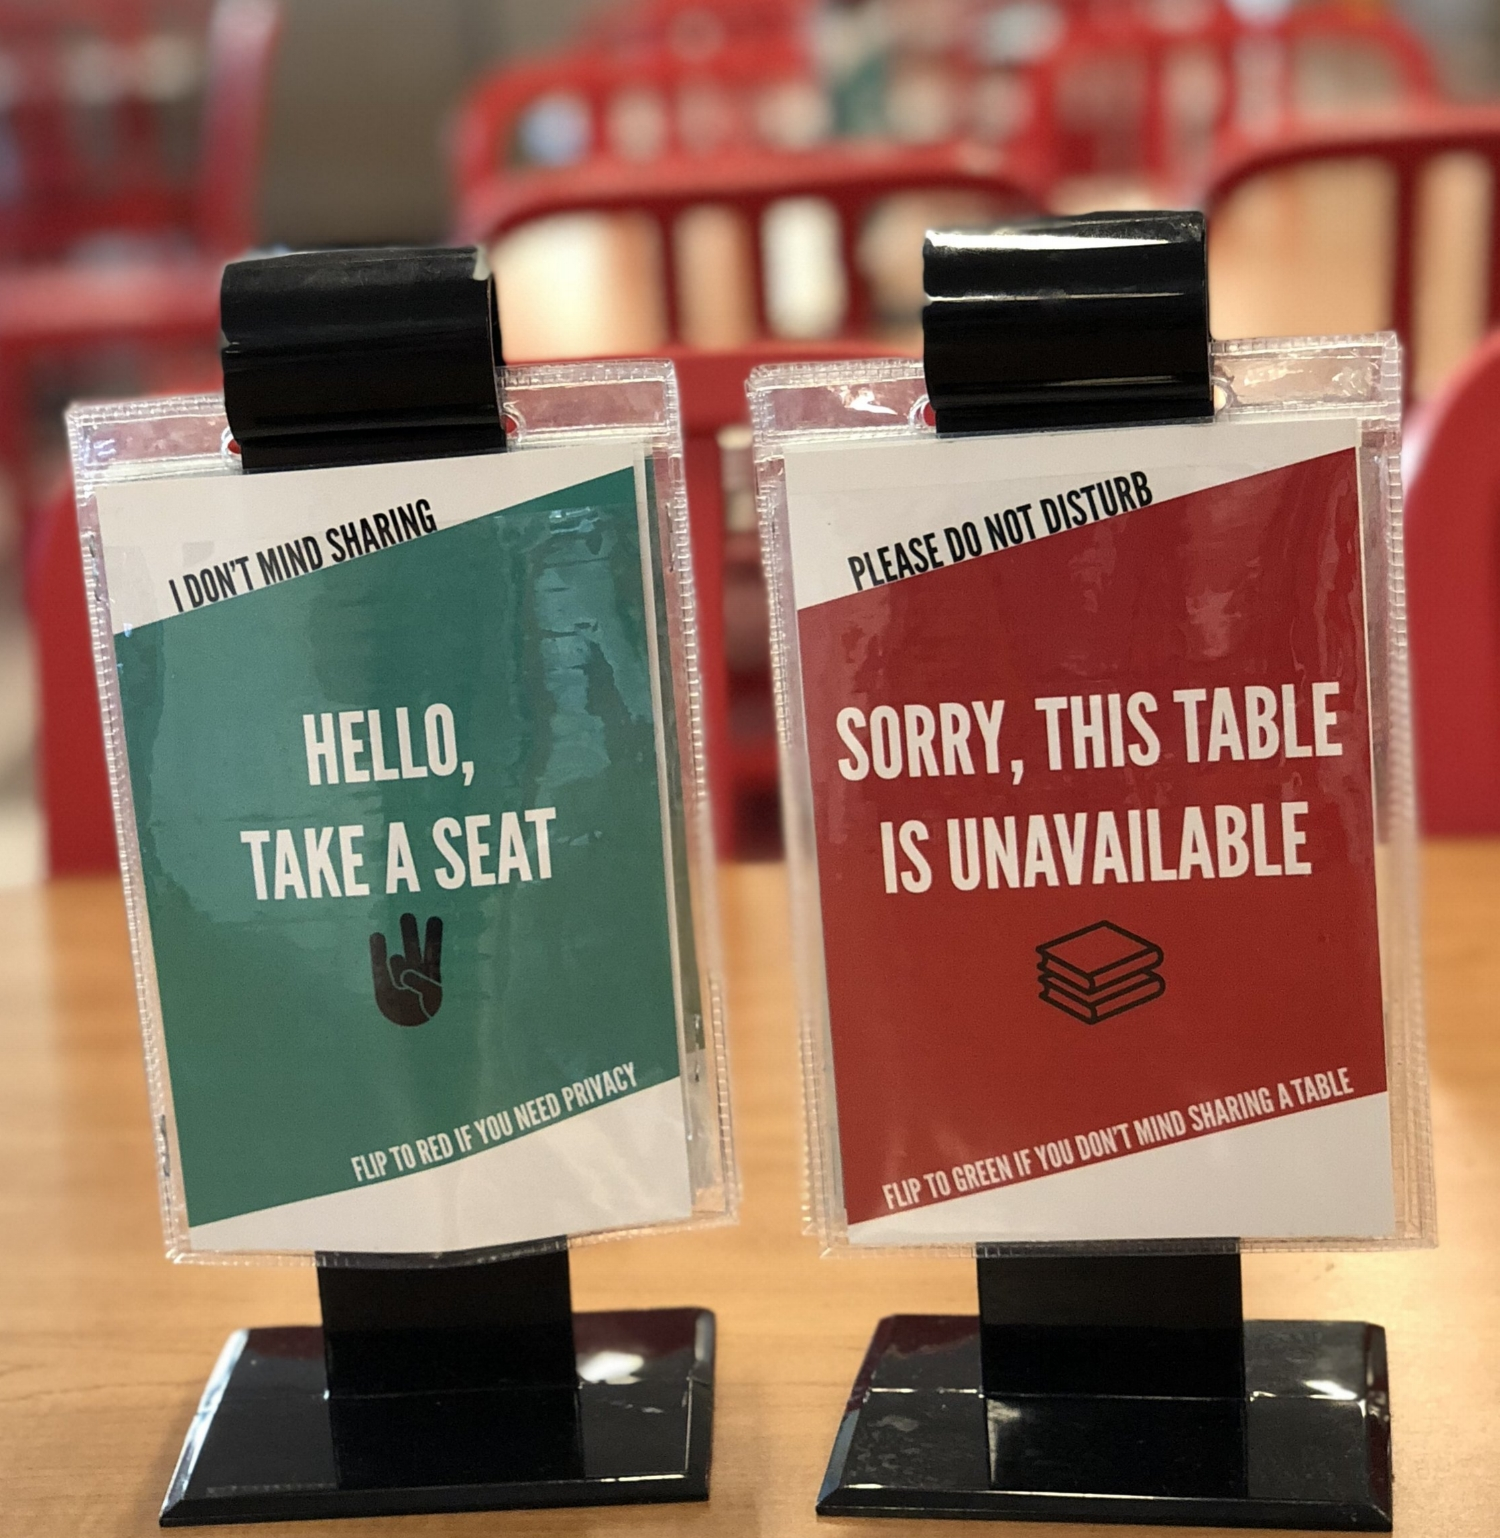 """Two Small signs, the first reads: """"Hello take a seat, I don't mind sharing"""", and the second reads: """"sorry, this table is unavailable, Please do not disturb"""". Links to Blog Page of this site."""